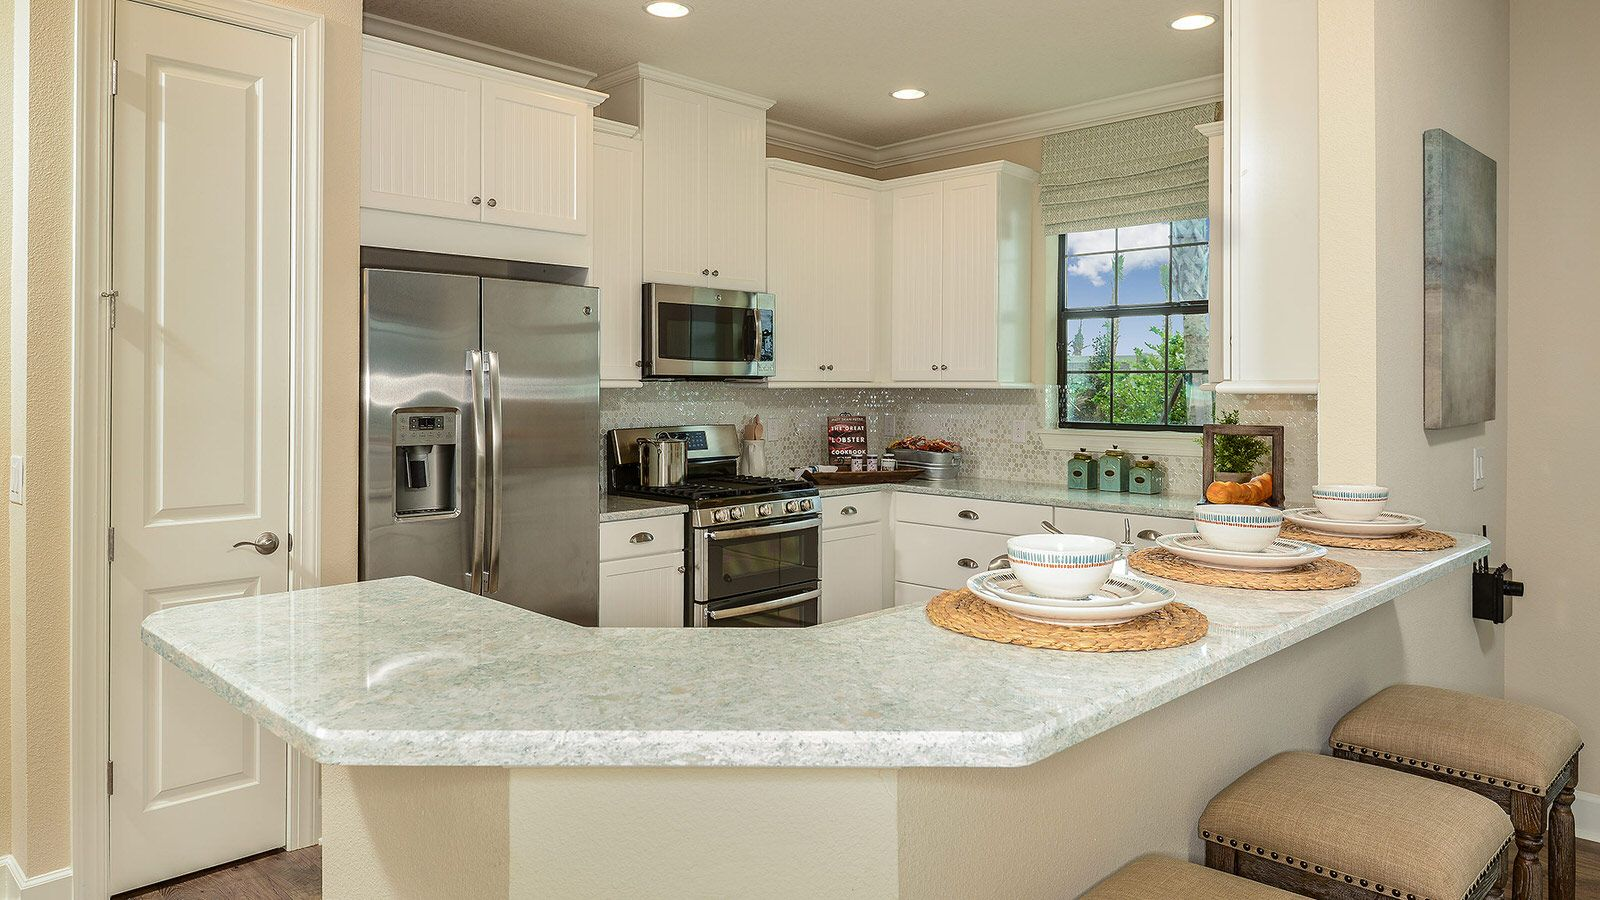 Kitchen featured in the Roma Plan By Taylor Morrison in Tampa-St. Petersburg, FL